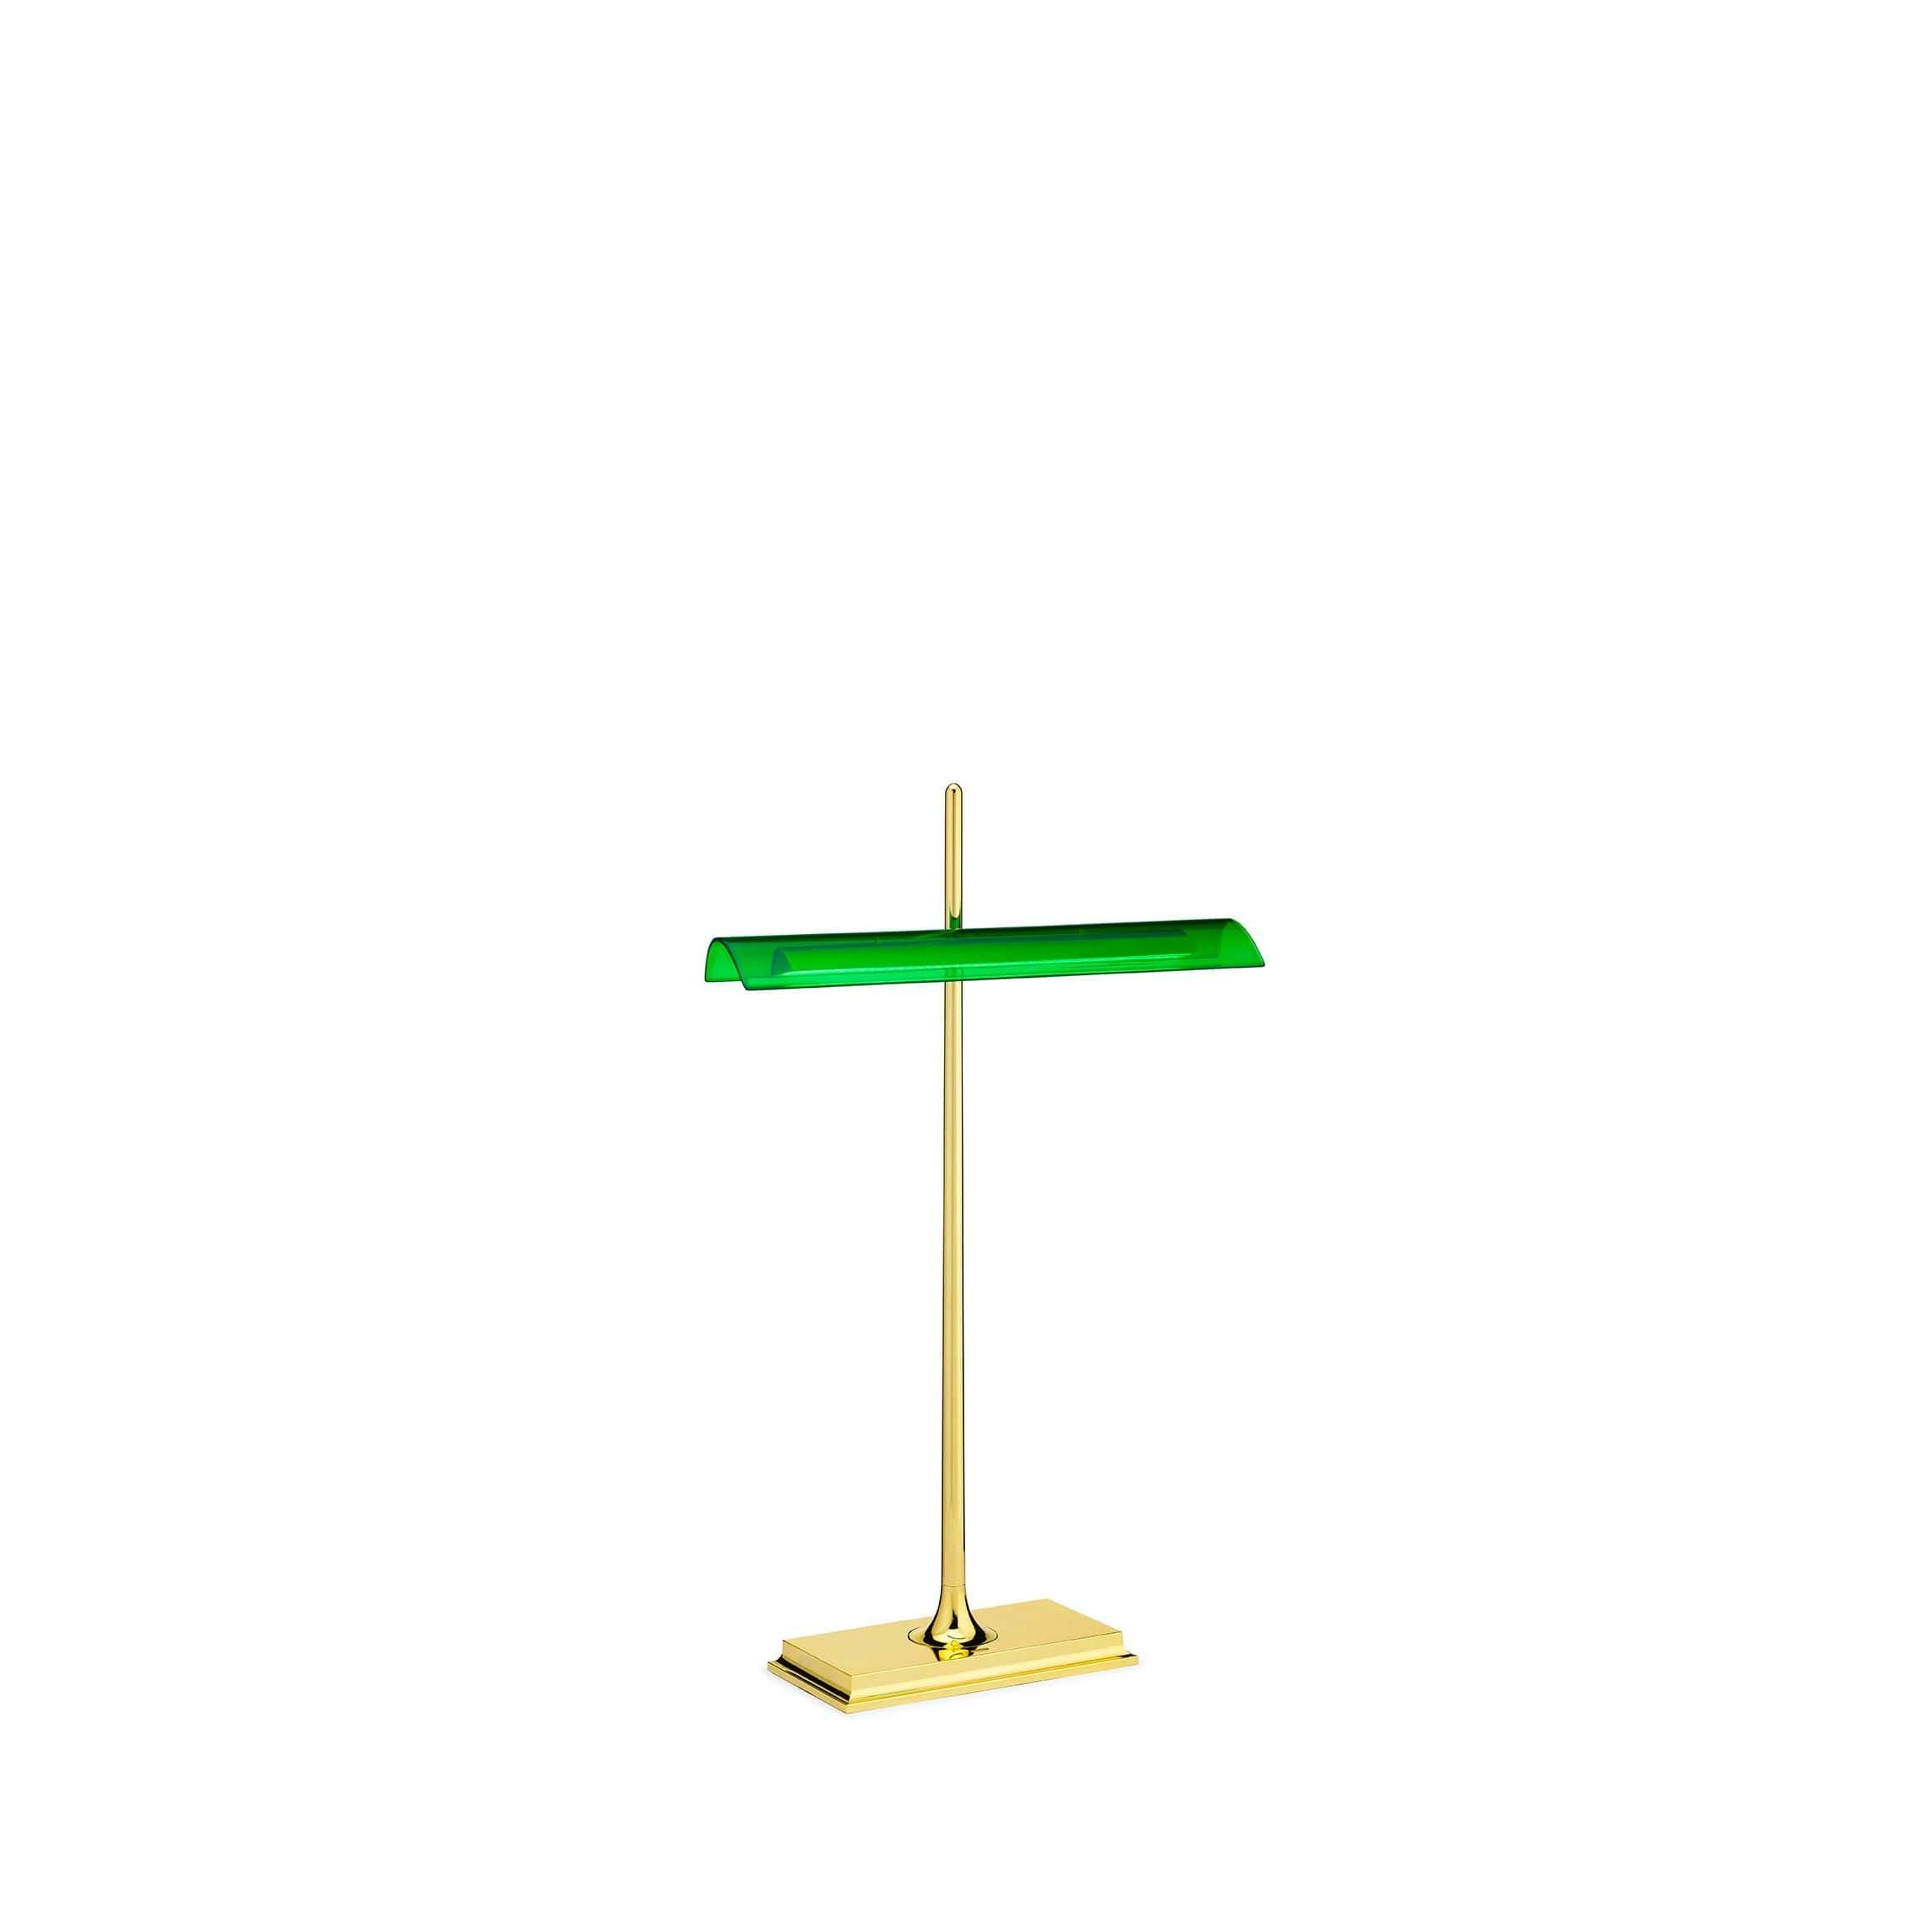 Tafellamp Groen Flos Goldman Led Tafellamp Messing Groen